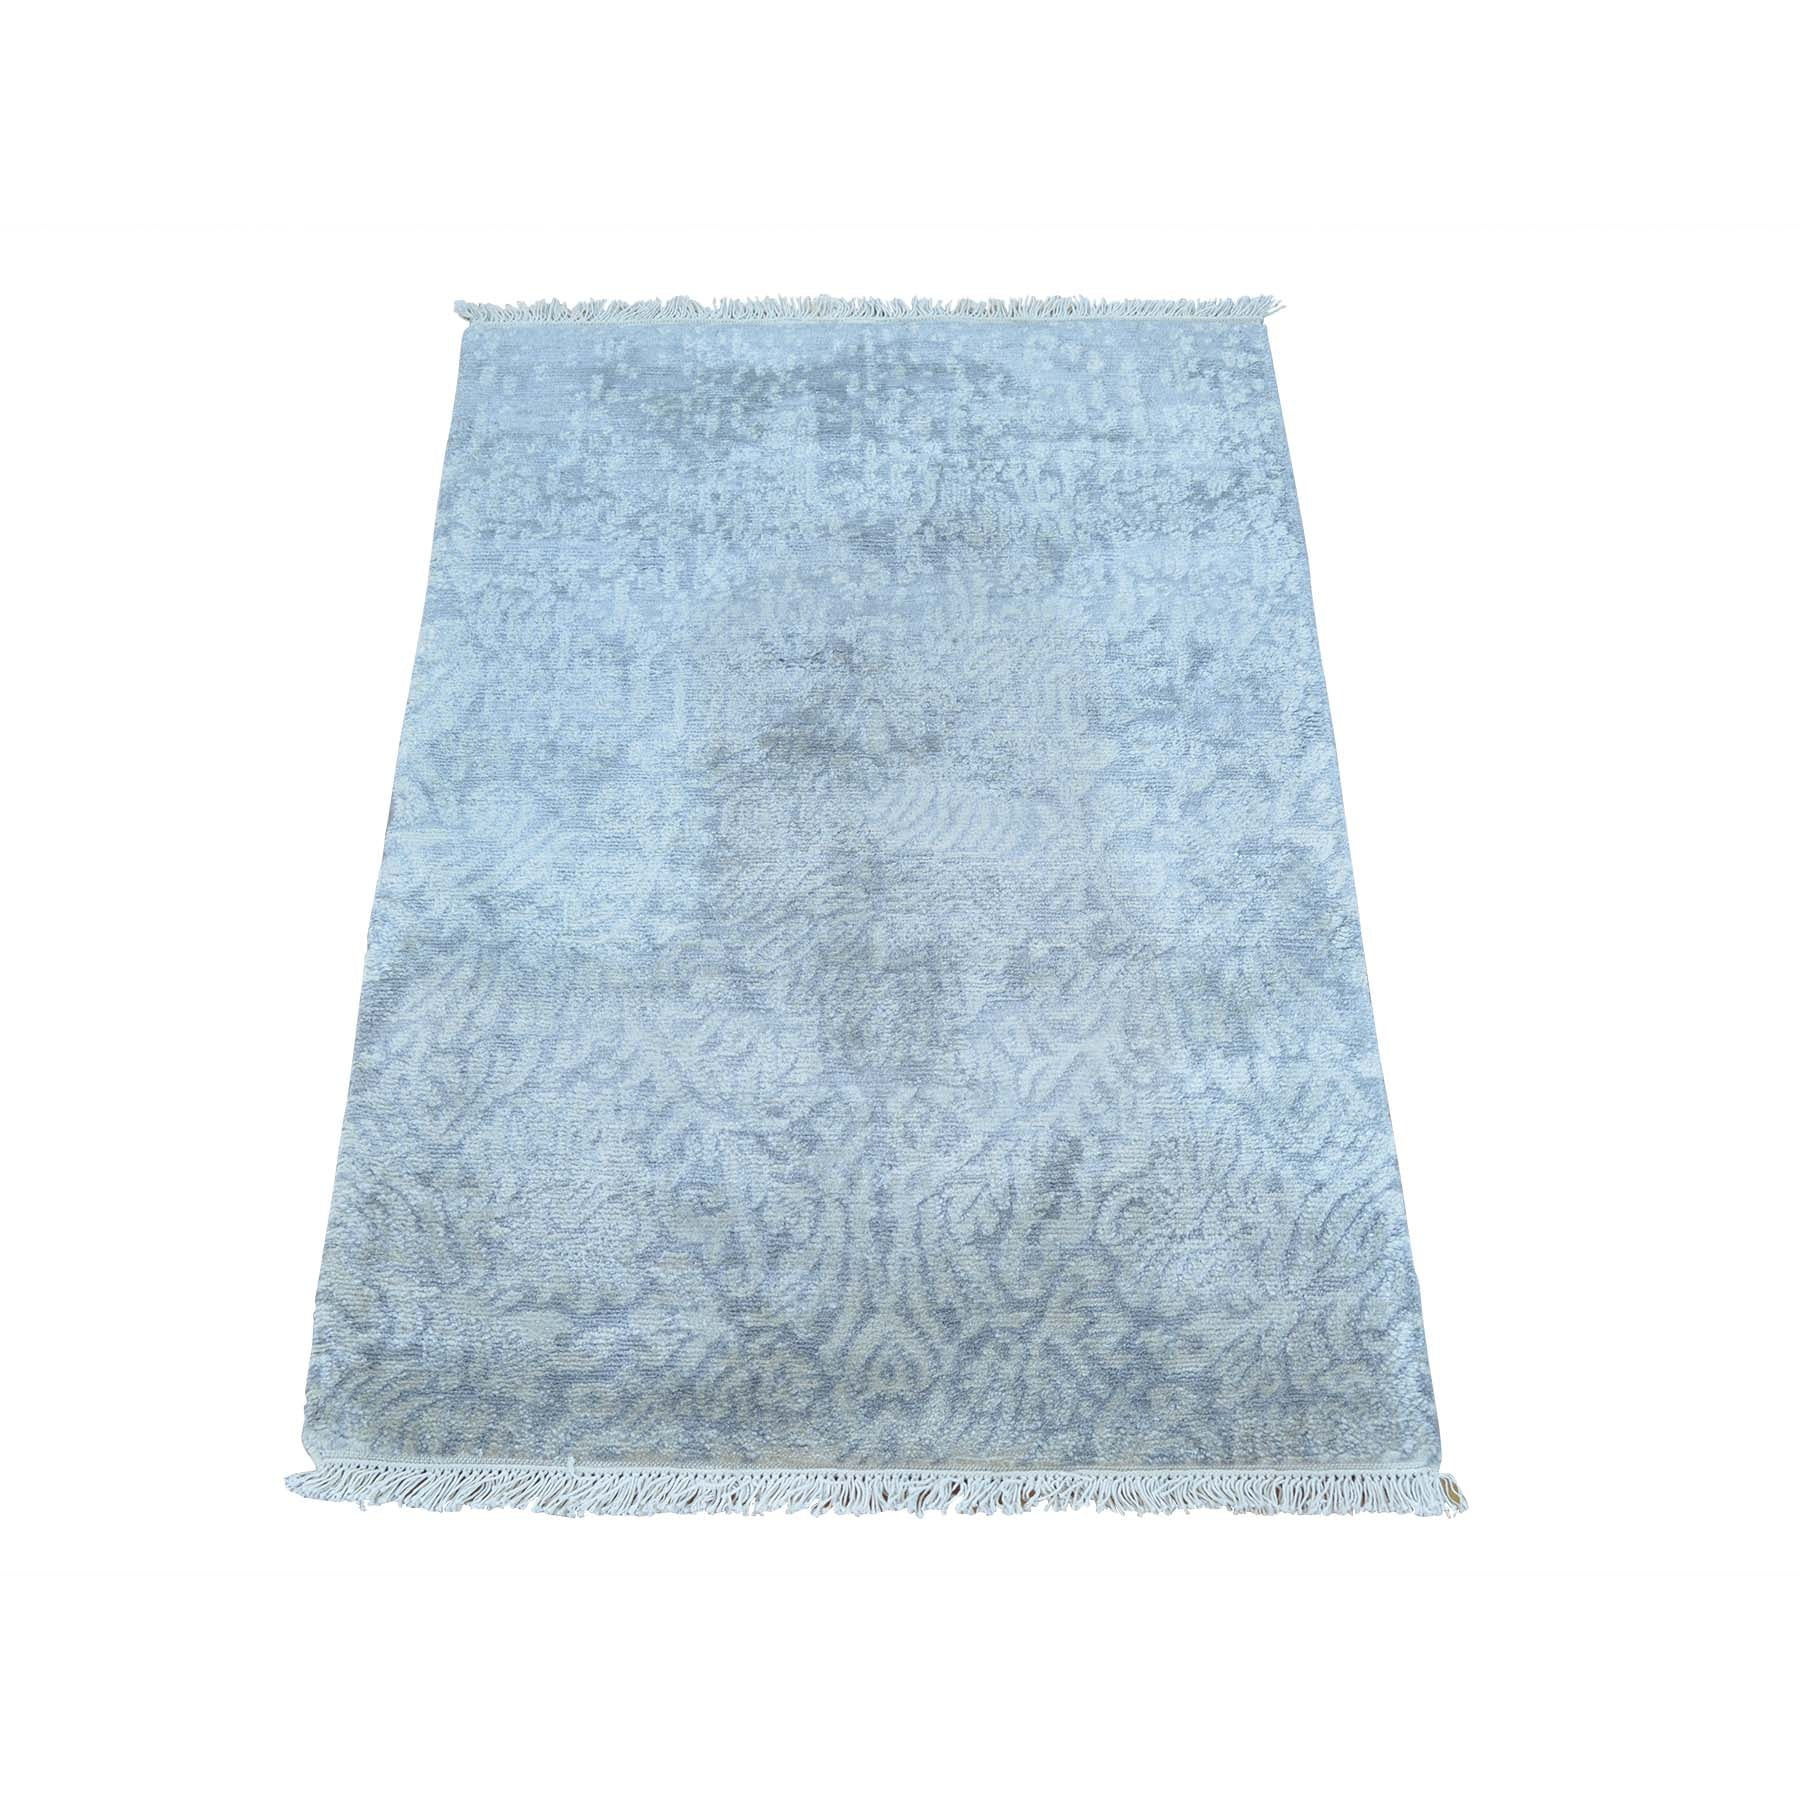 "Handmade Modern and Contemporary Rectangle Rug > Design# SH25723 > Size: 2'-0"" x 3'-0"" [ONLINE ONLY]"